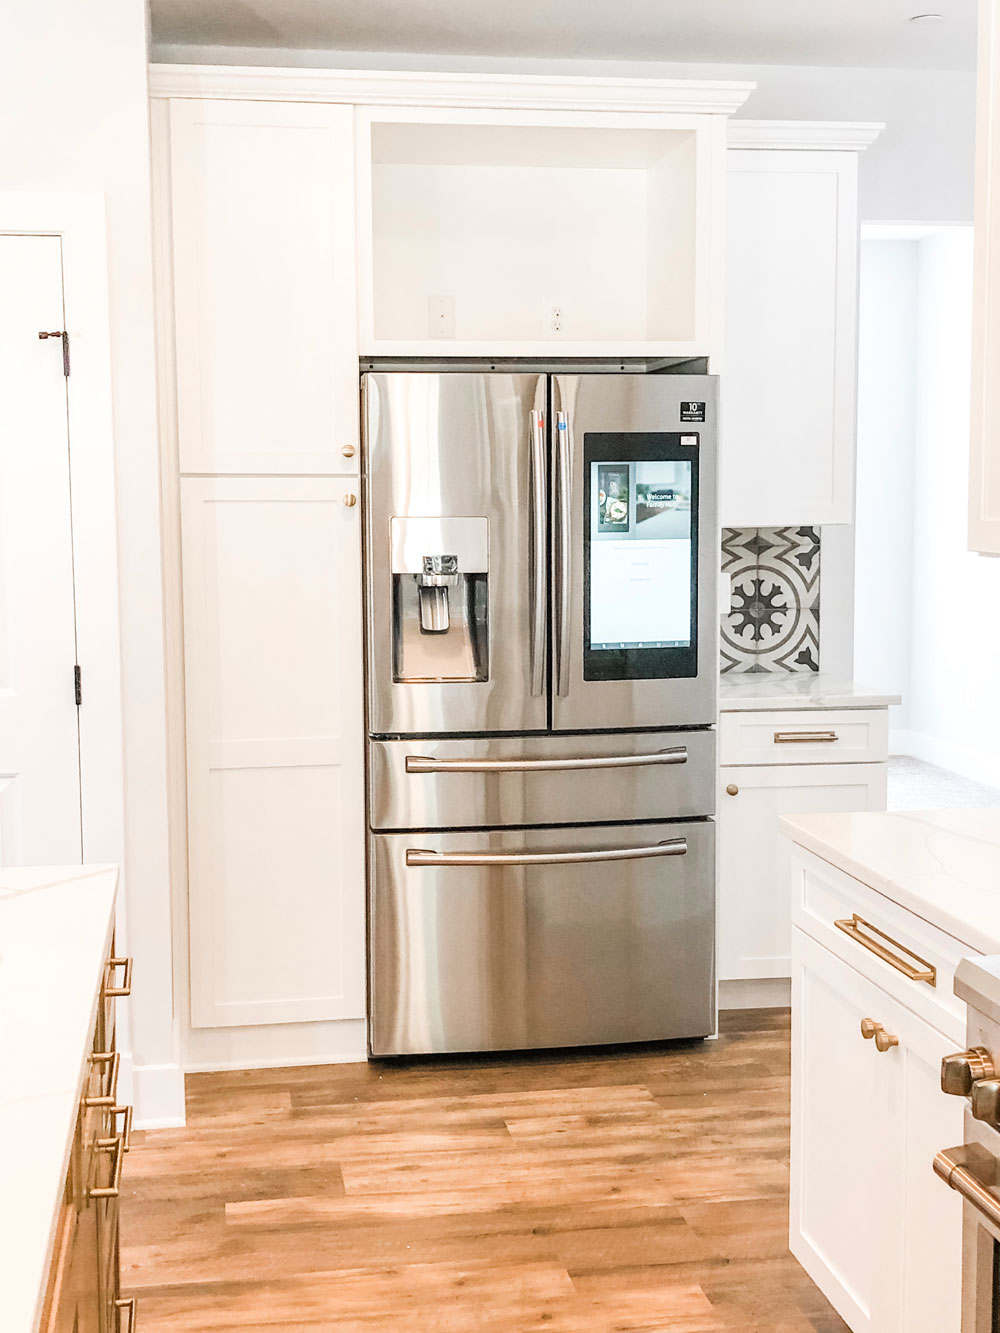 Picture from a custom home tour of a kitchen. This picture shows a refrigerator surrounded by white cabinetry. The fridge is a smart fridge with a screen like a tablet or phone.